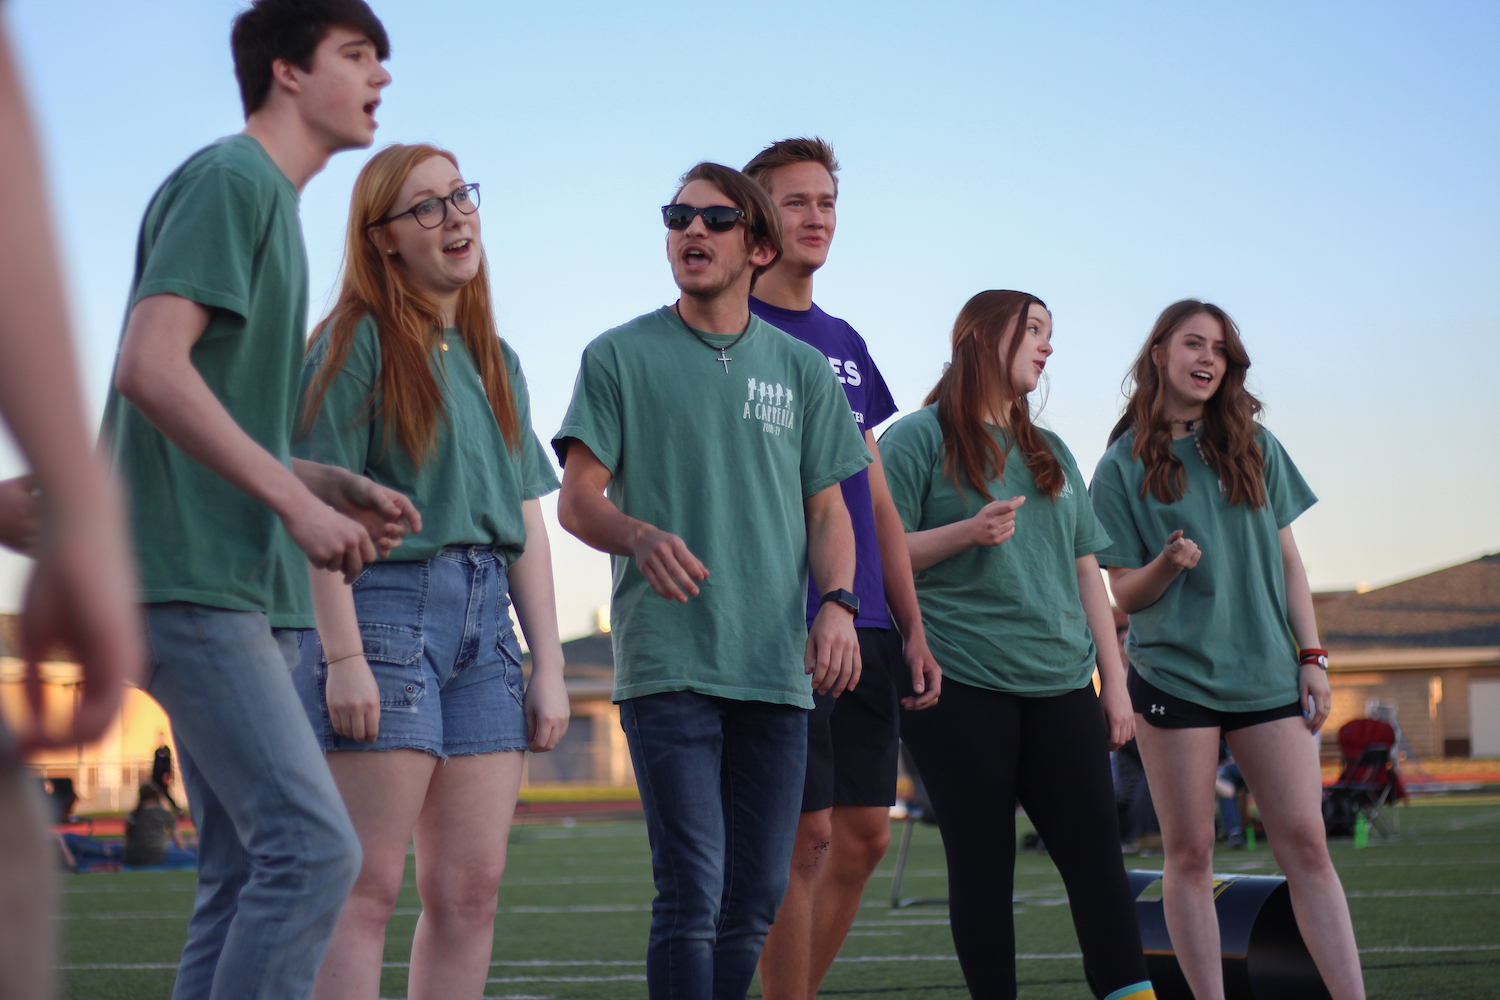 A+Capella+member+and+junior+Christian+Cortez+looks+to+junior+Luke+Wild+as+they+perform+in+the+middle+of+the+field.+